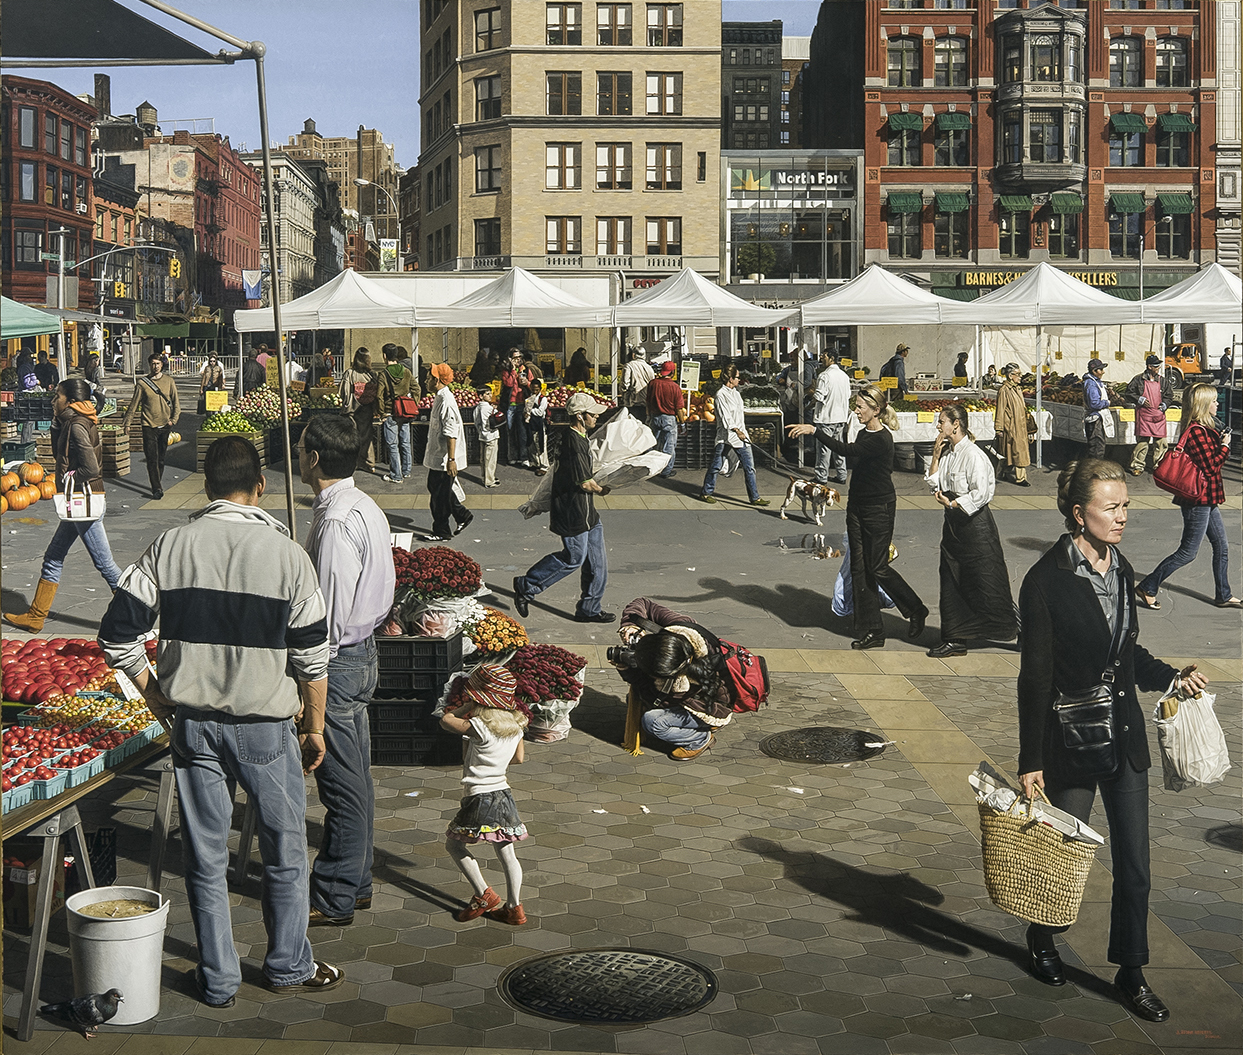 THE MARKET AT UNION SQUARE: FALL 2006 (2006/08)